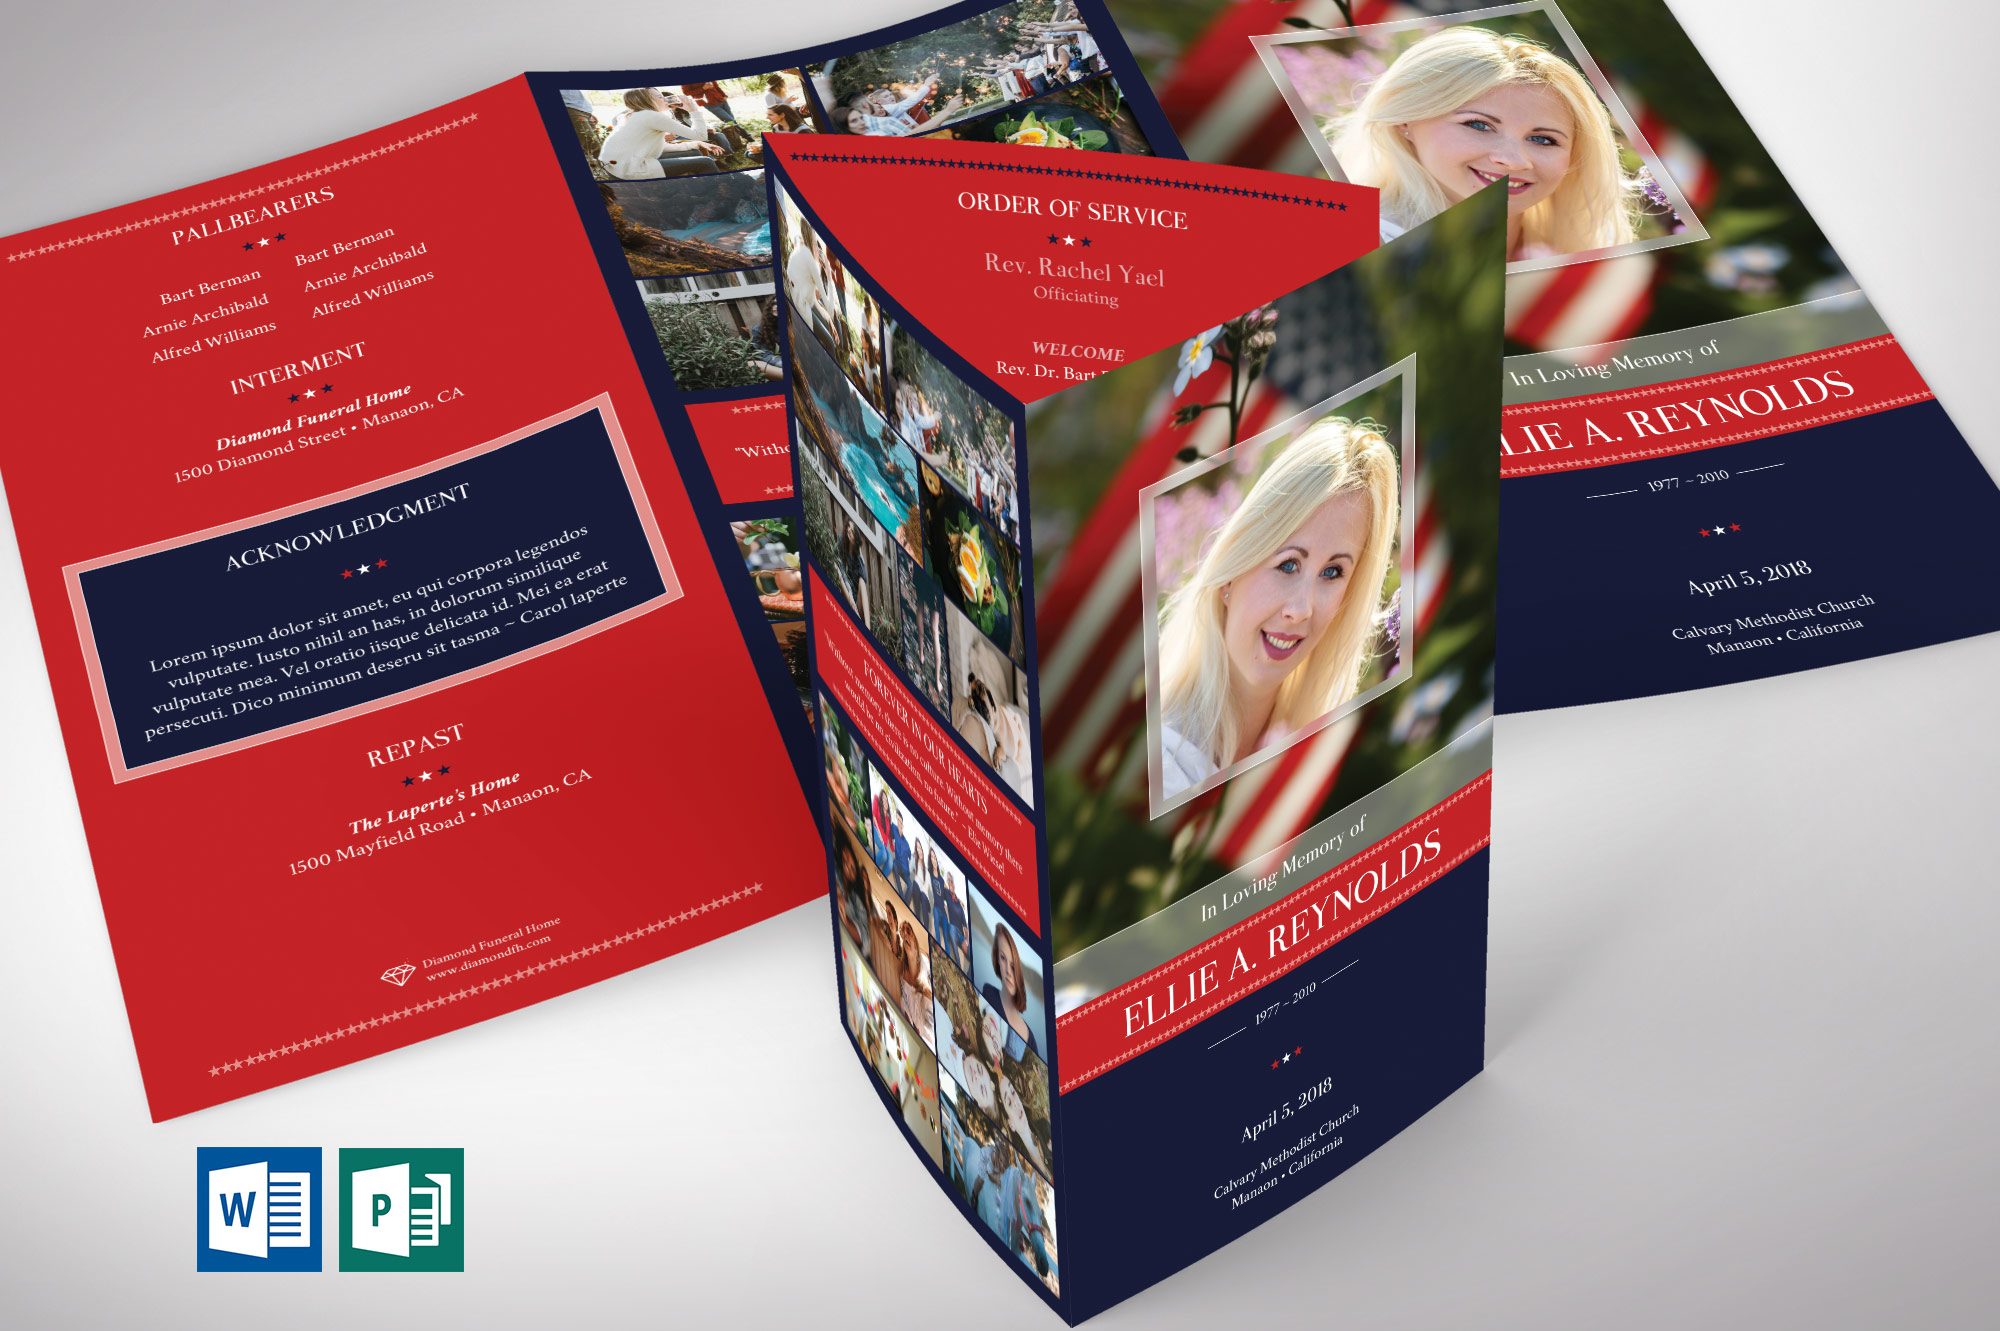 American Military Legal Trifold Funeral Program Word Publisher Template - V2